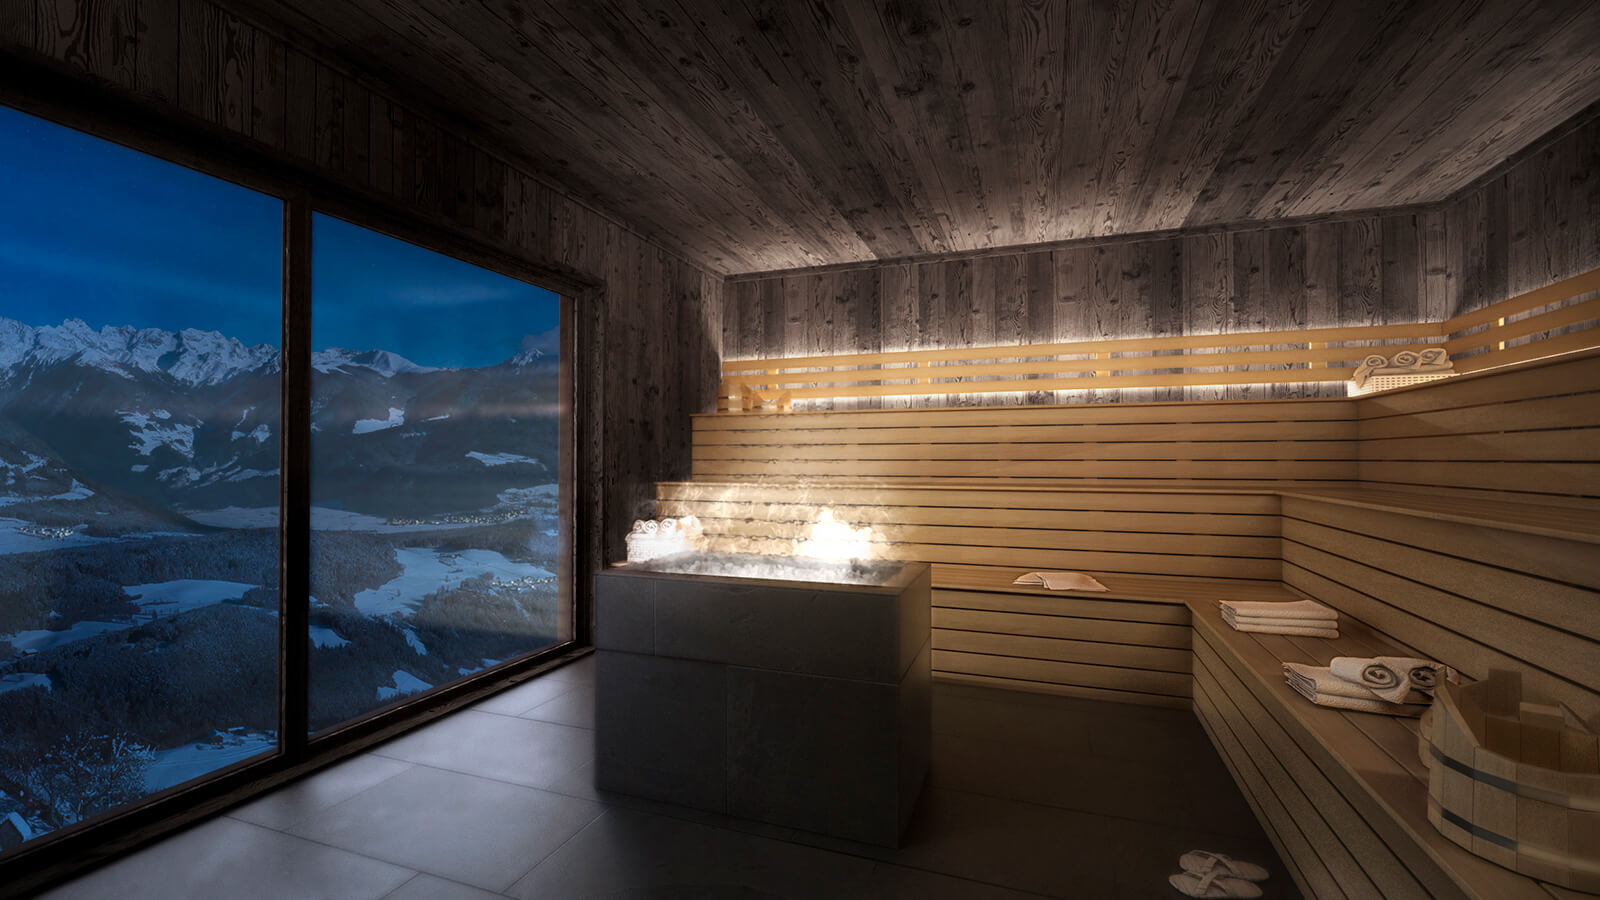 Sauna with a view to Reischach and surroundings